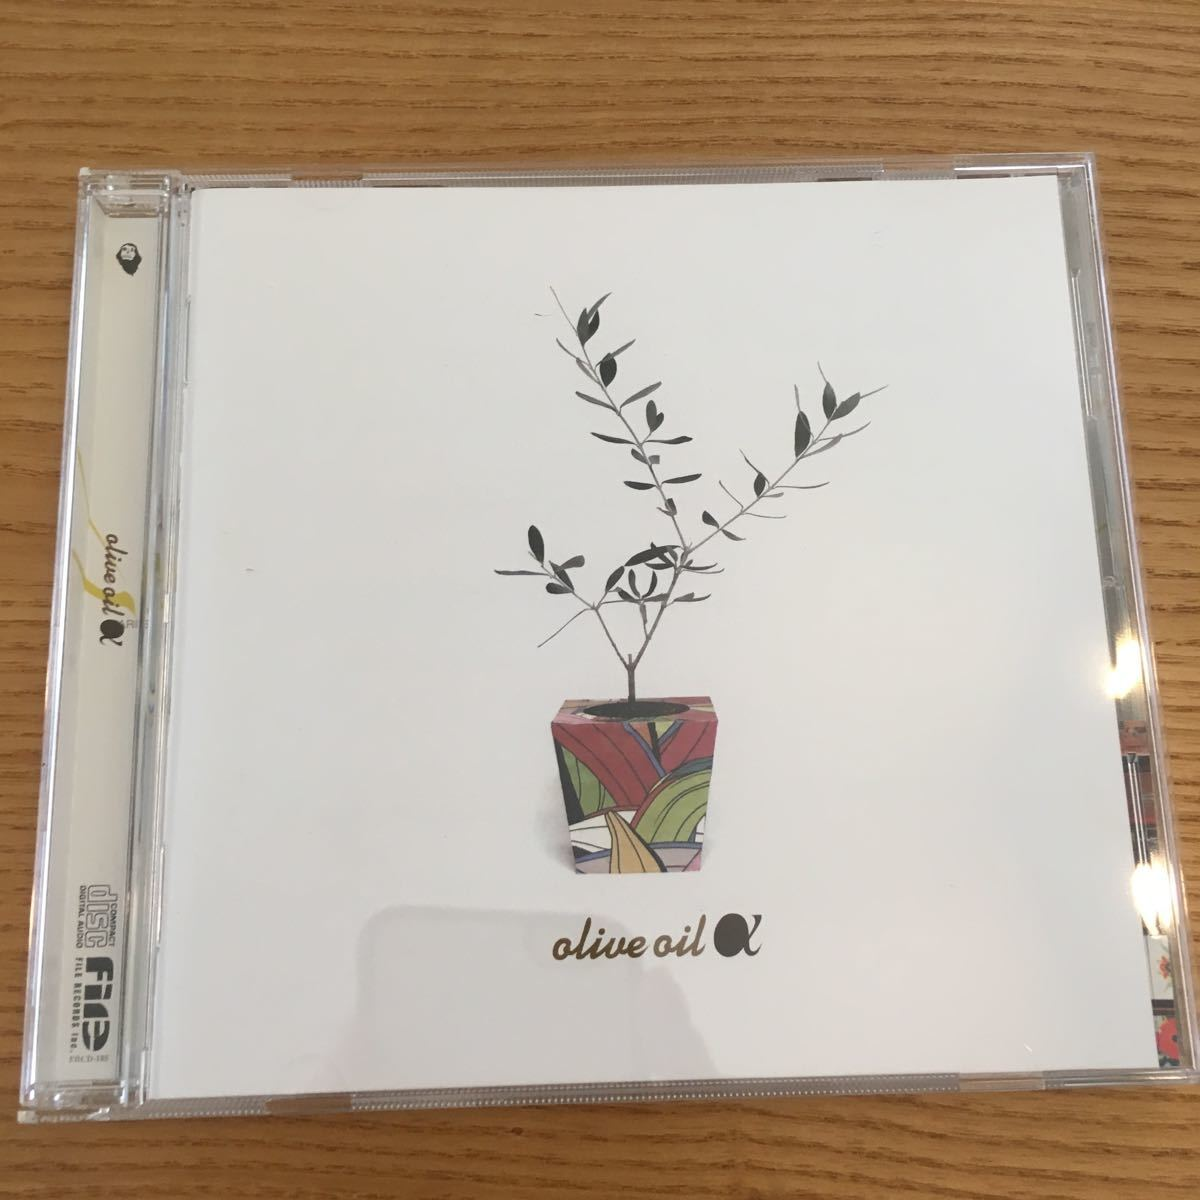 olive oil /a|CD